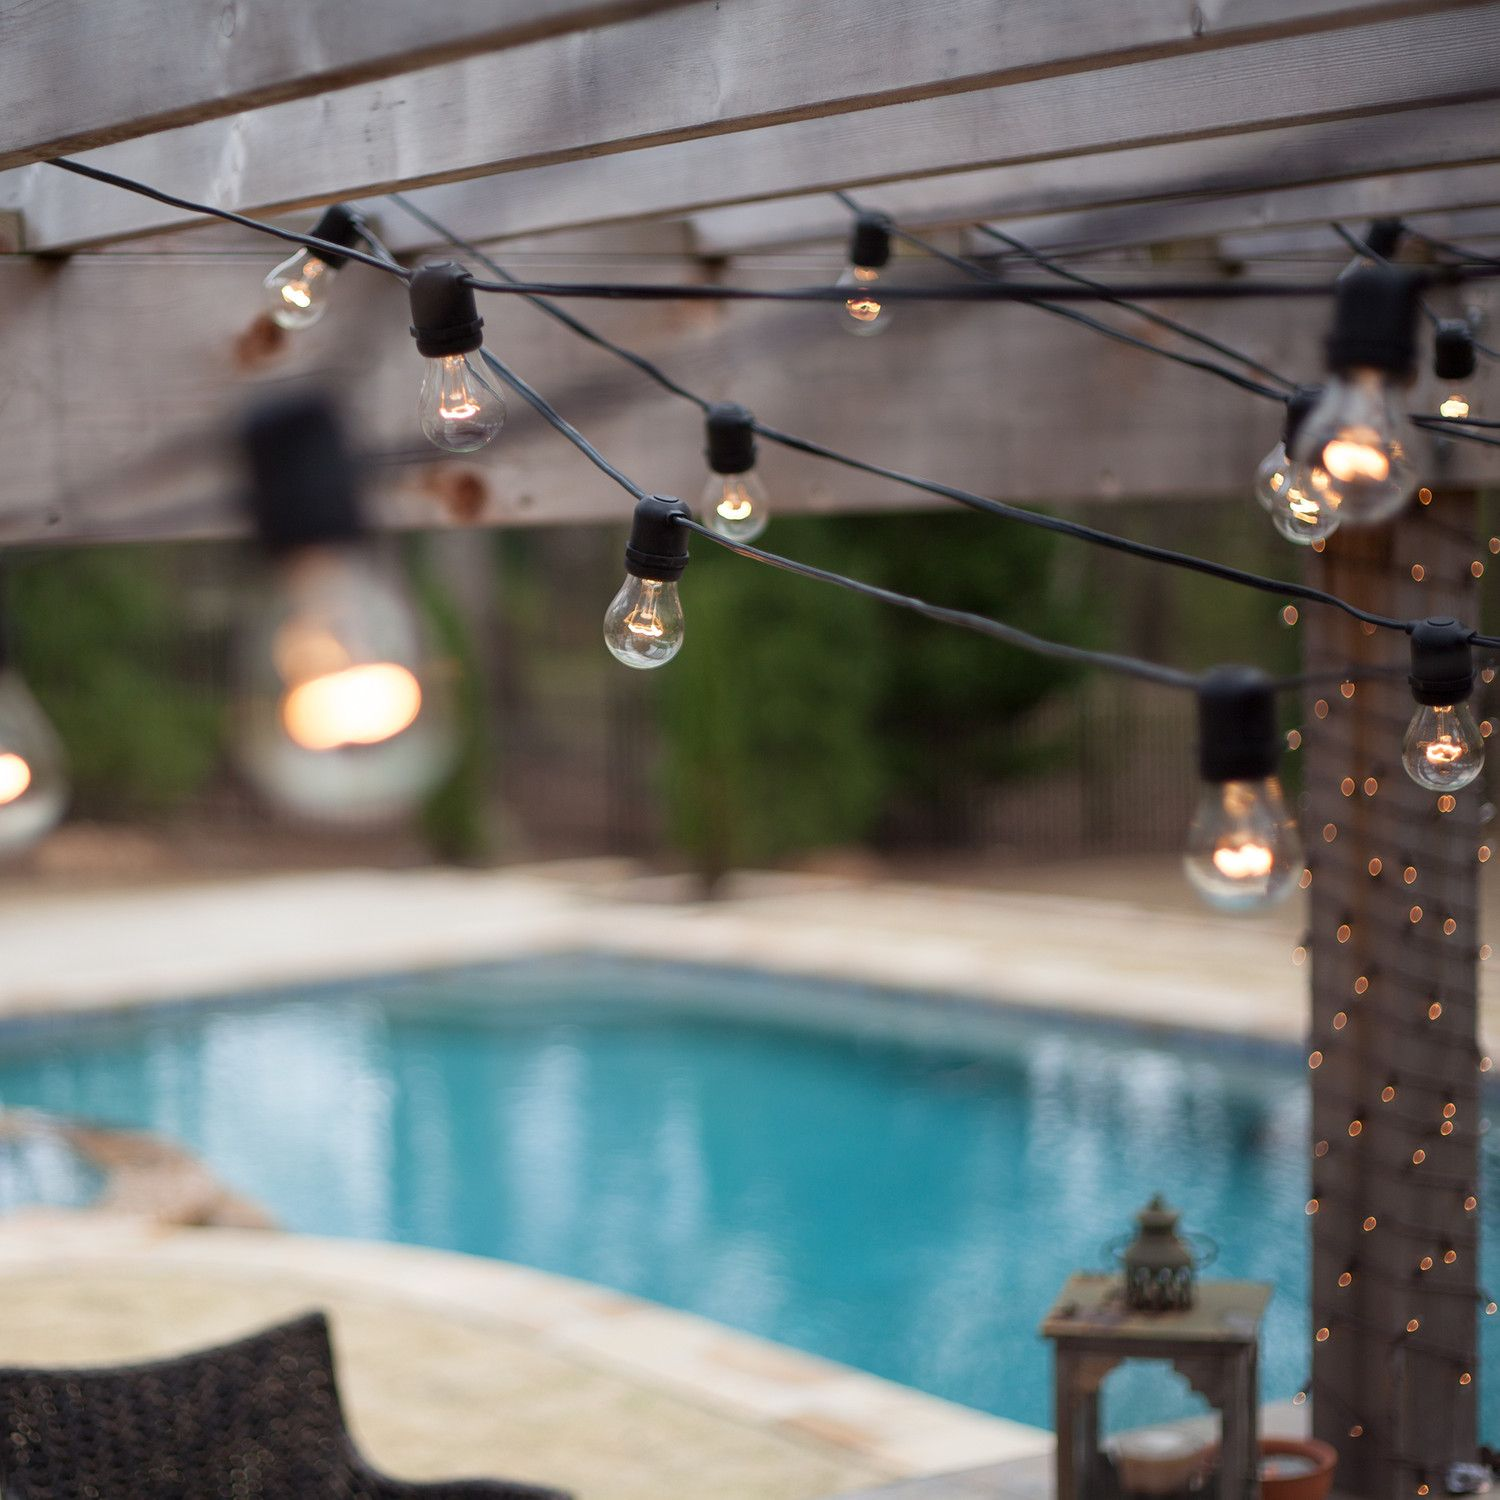 Patio Lights Clear String Hanging Over A Dream Pool Take Me Away